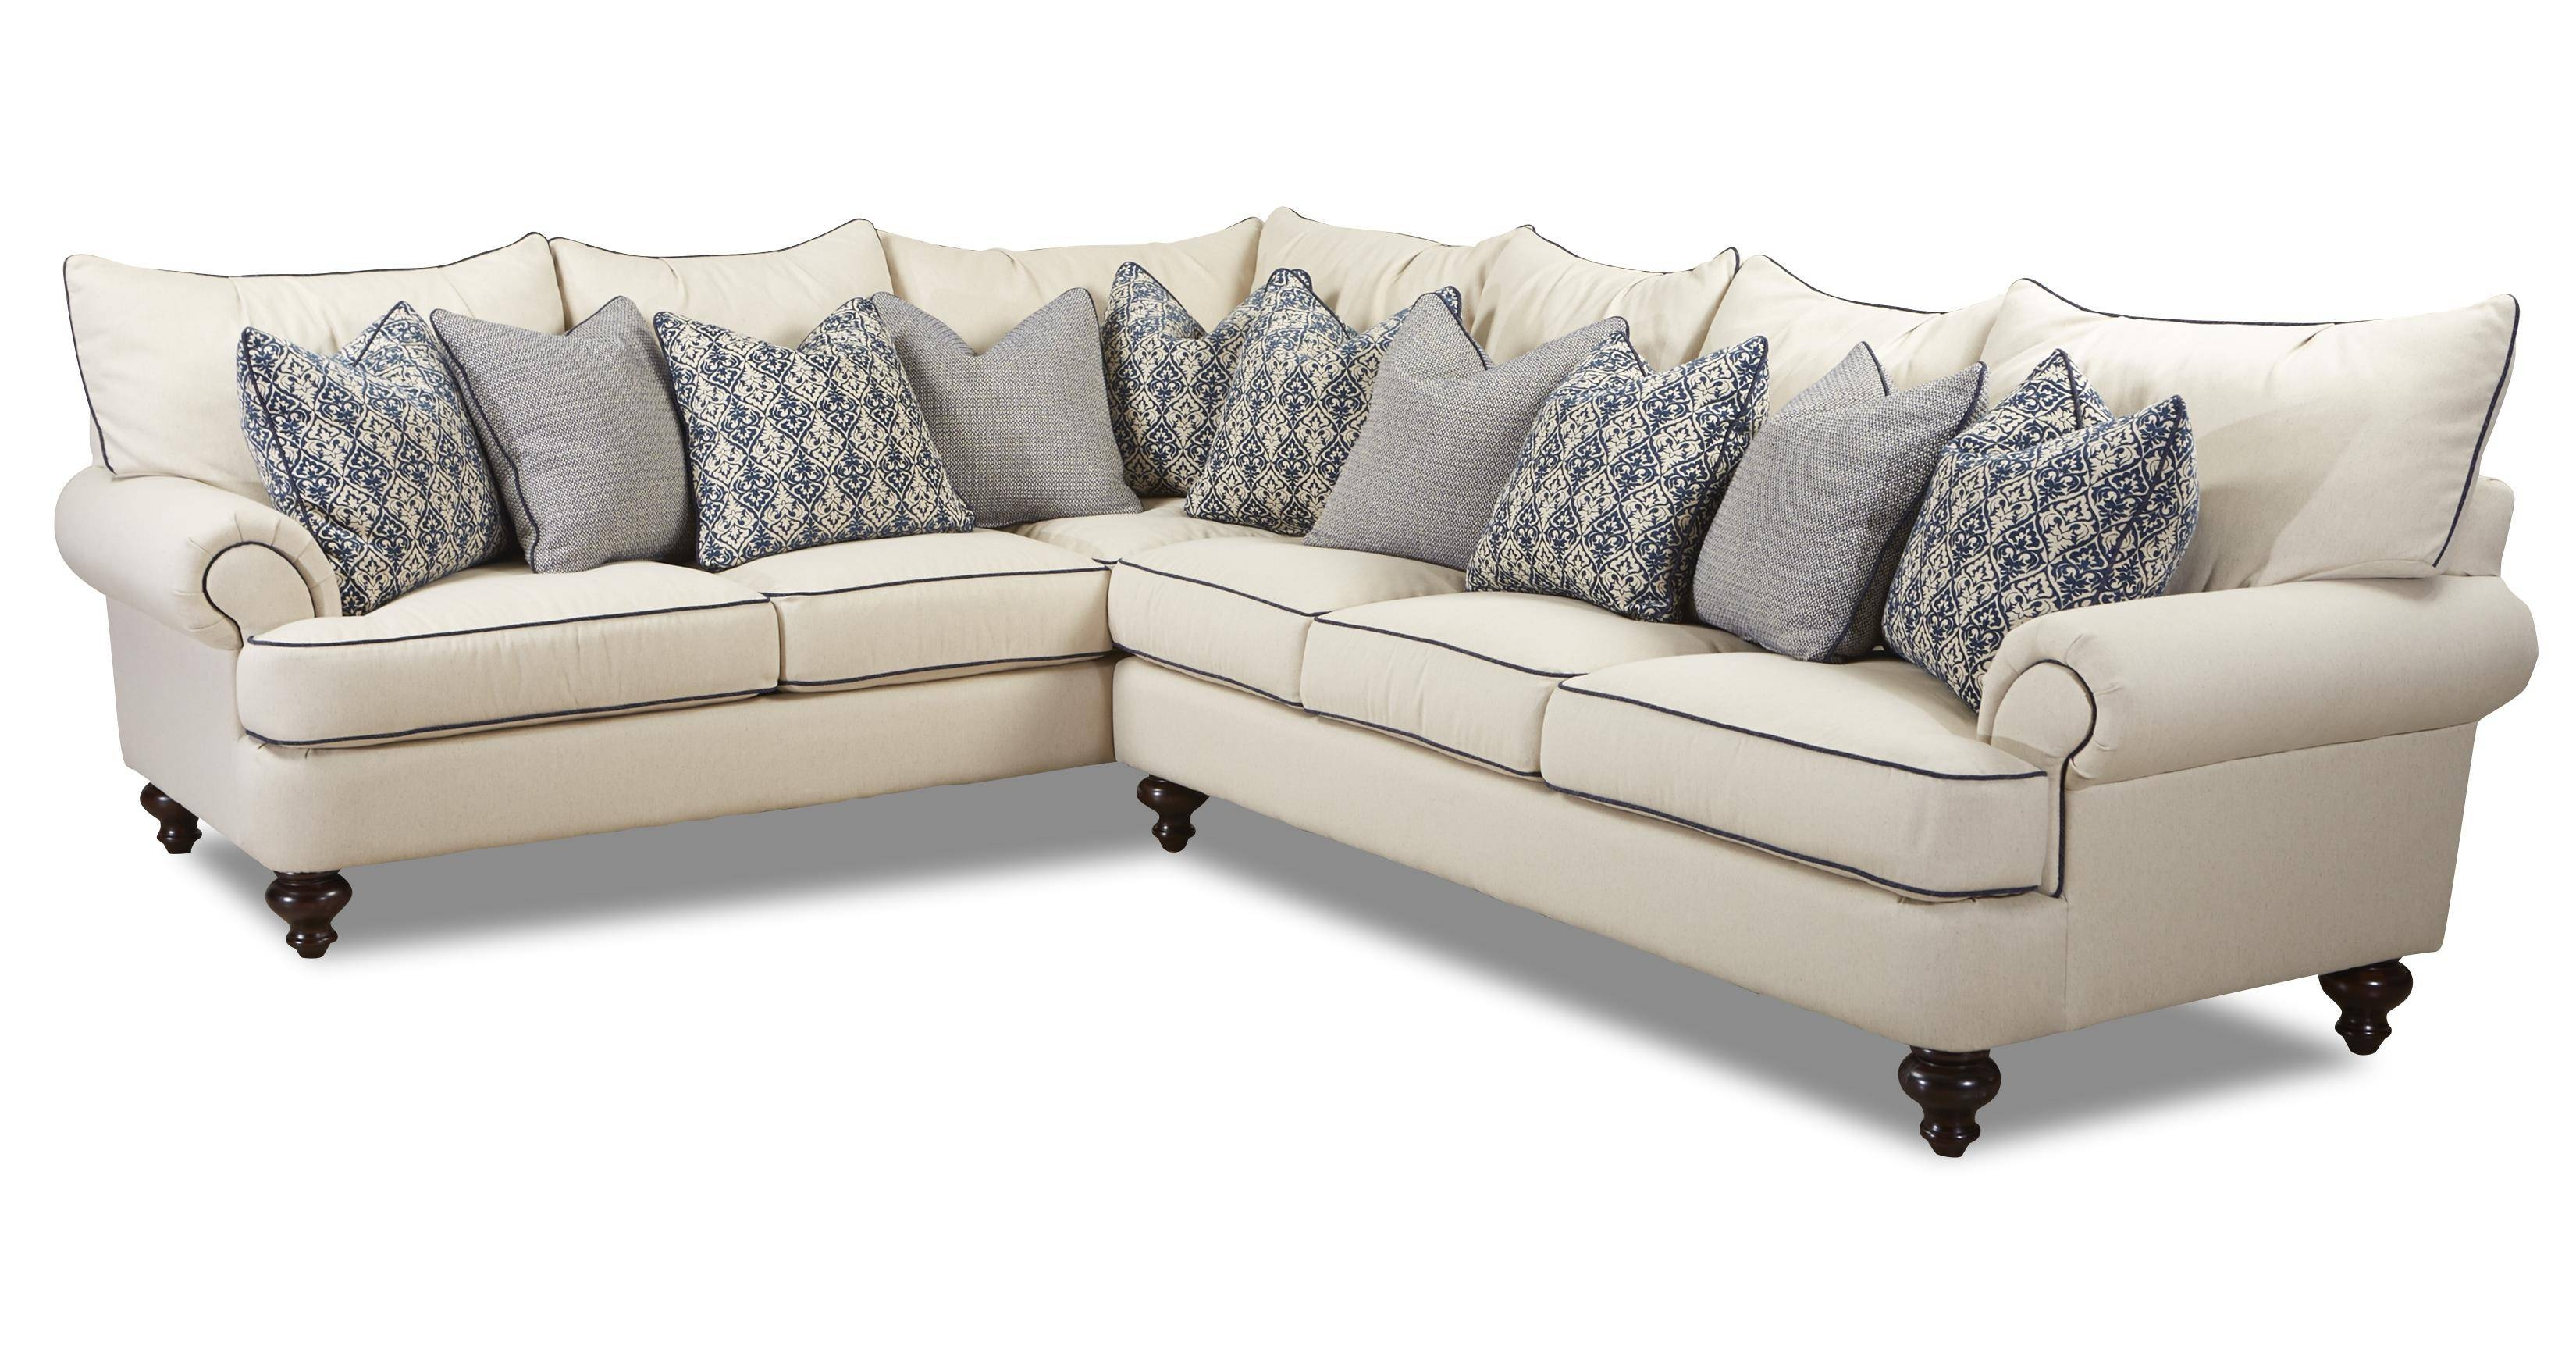 dollhouse miniature sectional sofa sofabordben trae 30 inspirations of shabby chic